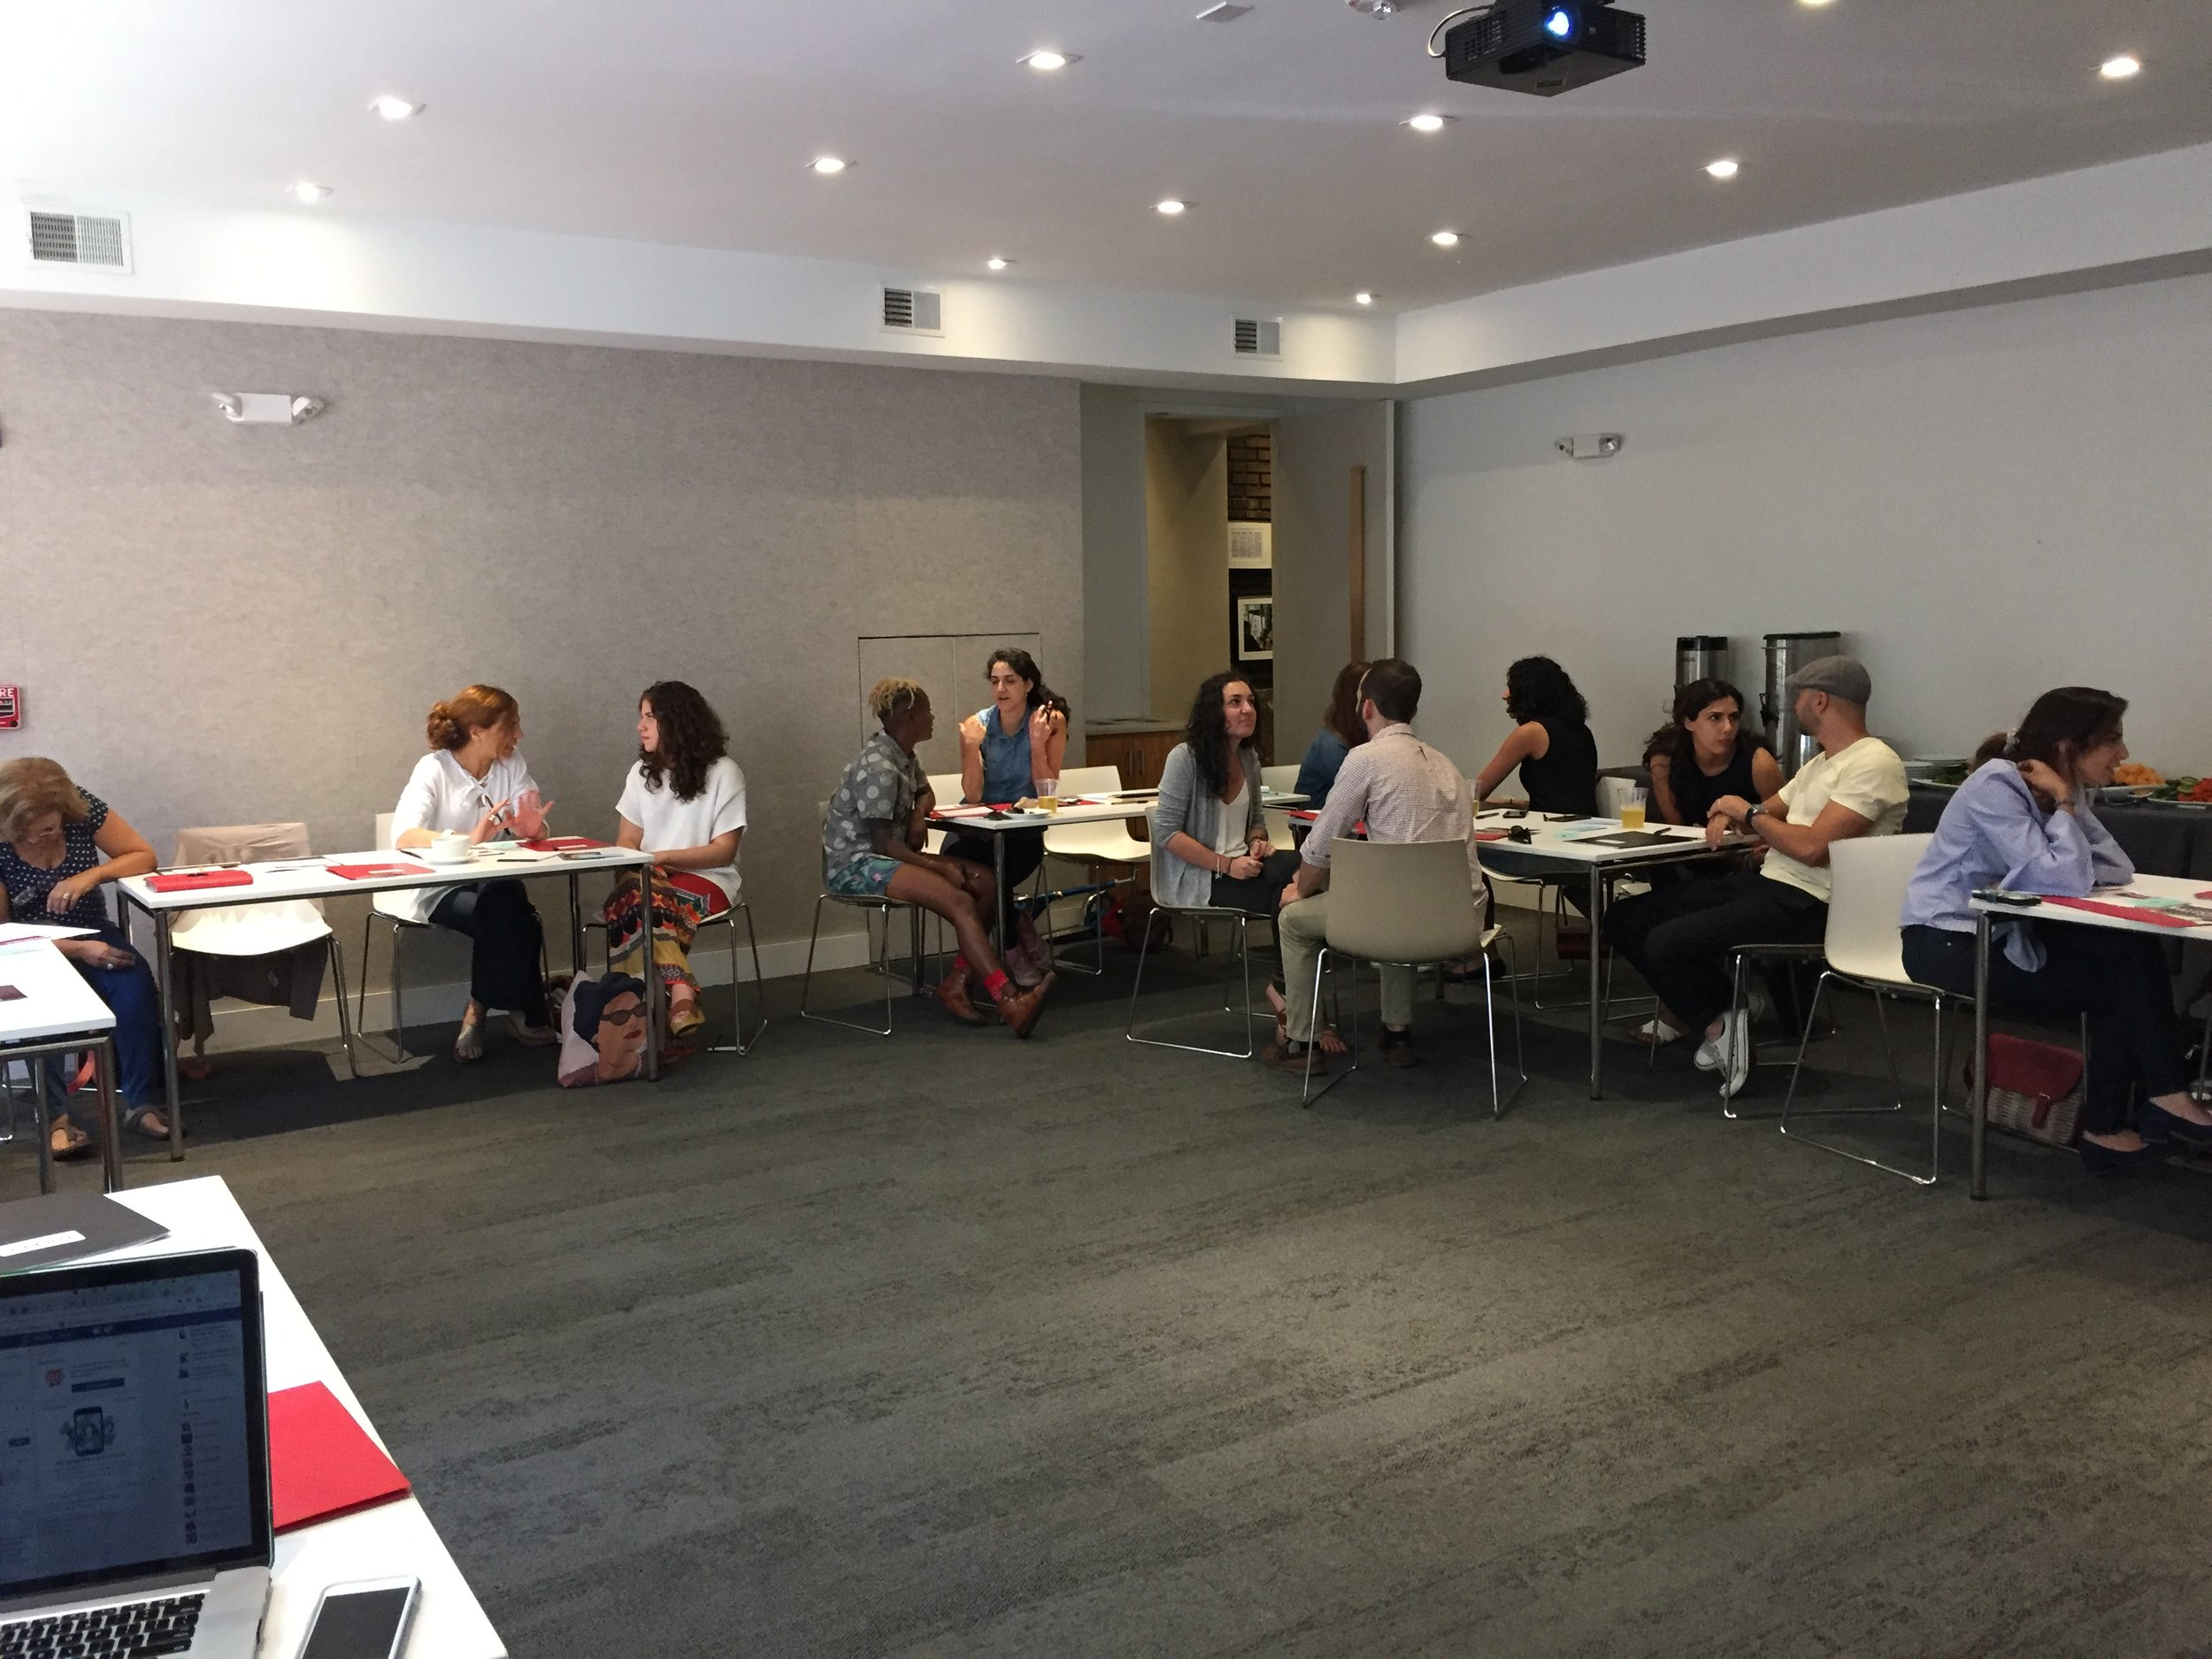 Palestinian Tales: A Storytelling WorkshopJuly 30, 2017, The Potter's HouseIn collaboration with the D.C. Palestinian Film and Arts Festival. - Storytelling workshop led by Nadia Abuelezam attended by 25 storytellers.